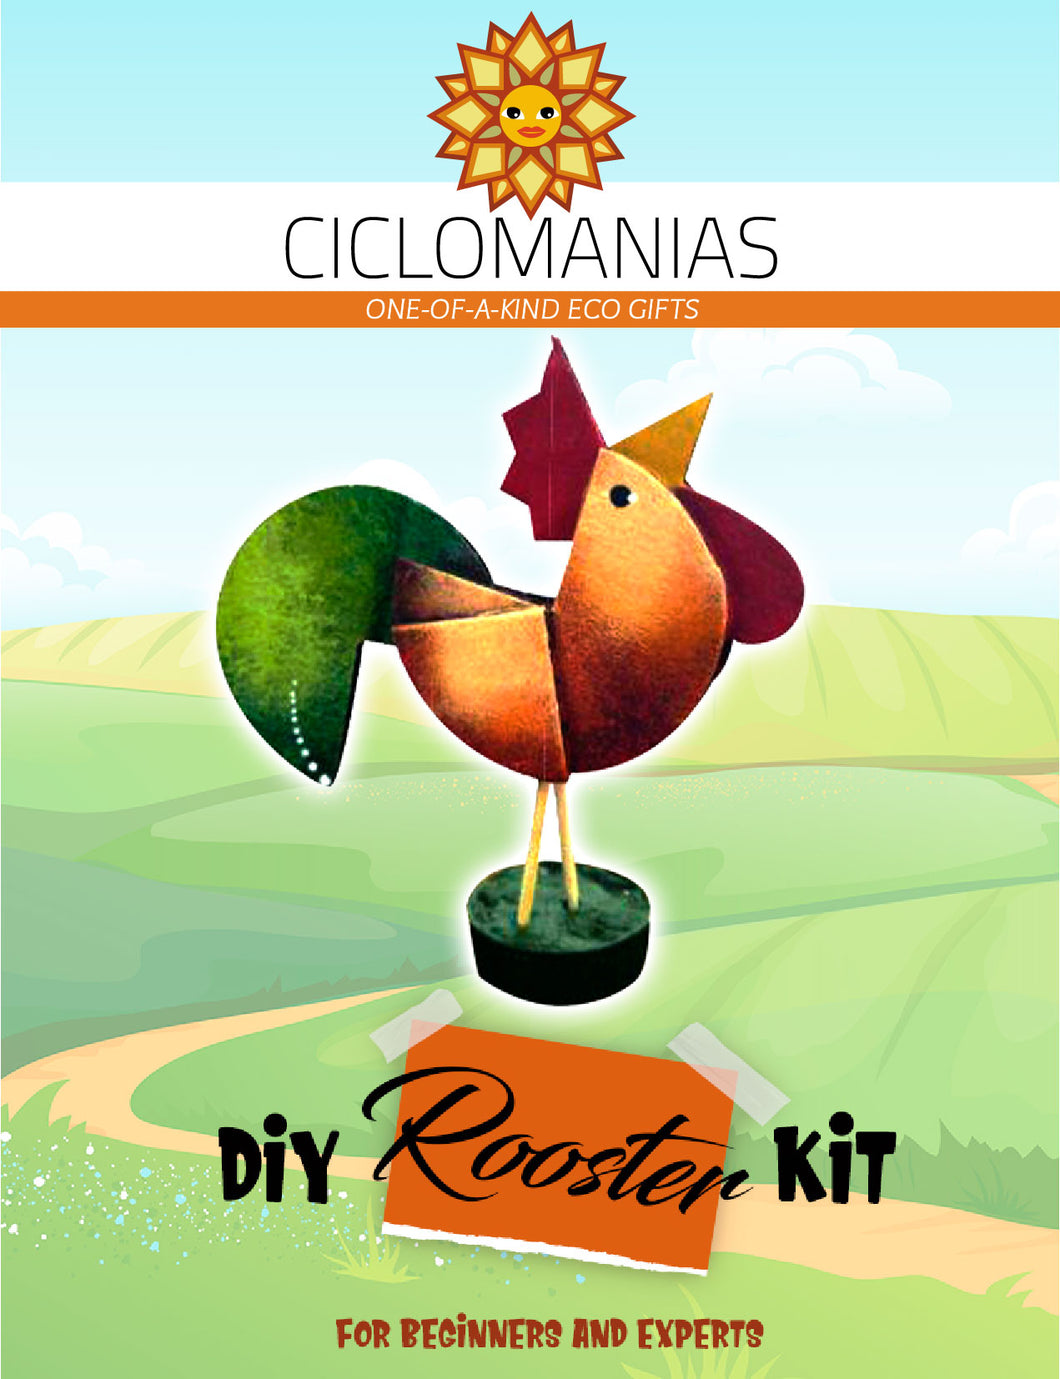 Rooster _ Do It Yourself Kit